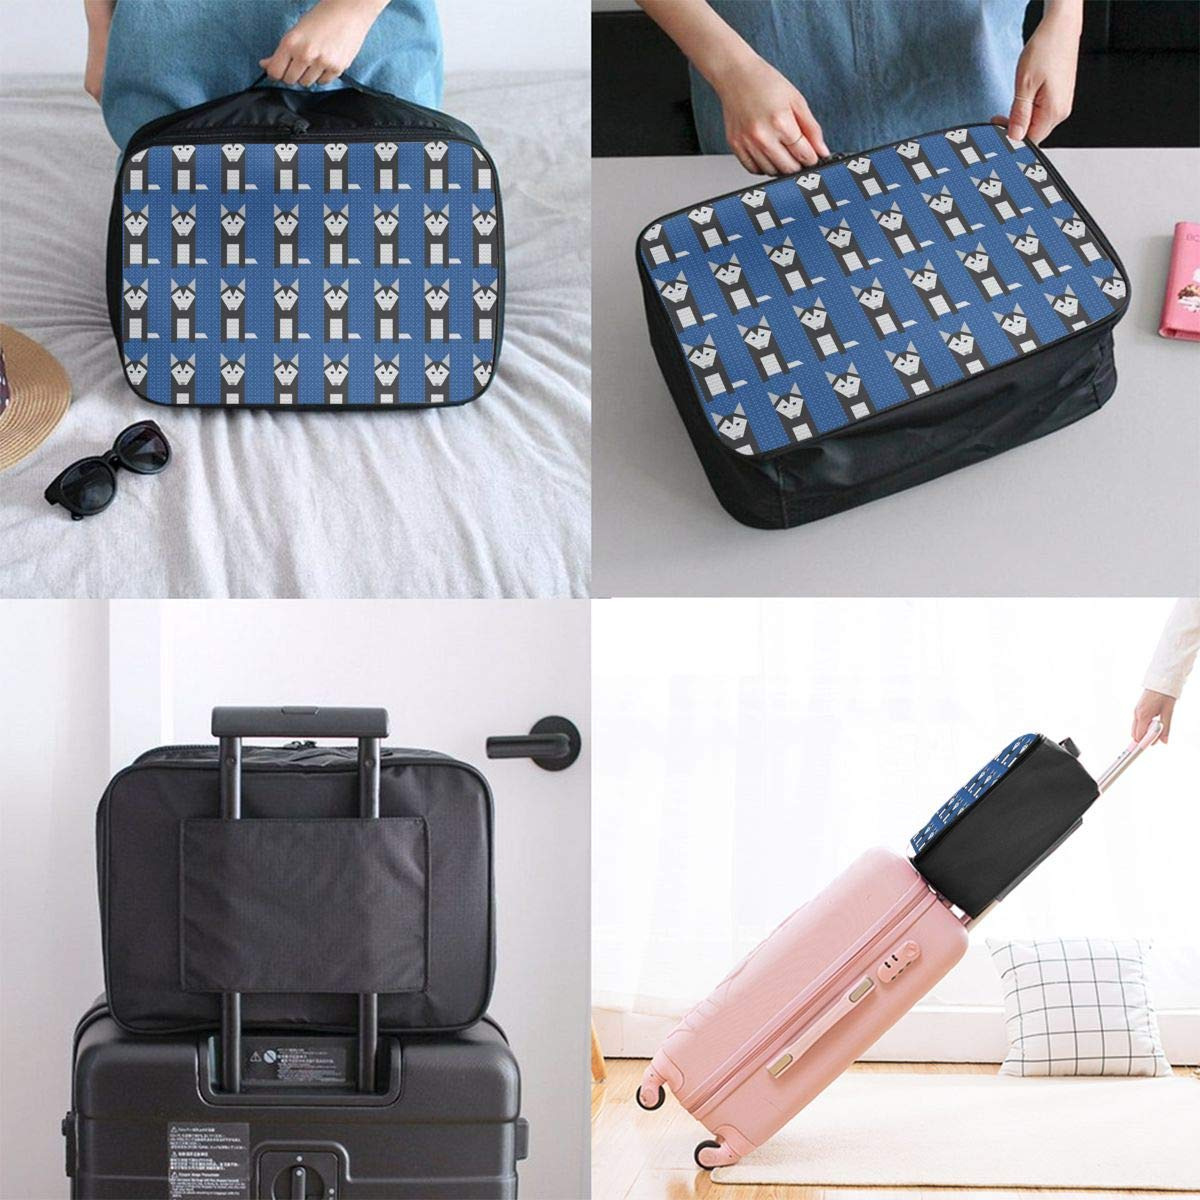 YueLJB Cute Husky Pattern Lightweight Large Capacity Portable Luggage Bag Travel Duffel Bag Storage Carry Luggage Duffle Tote Bag